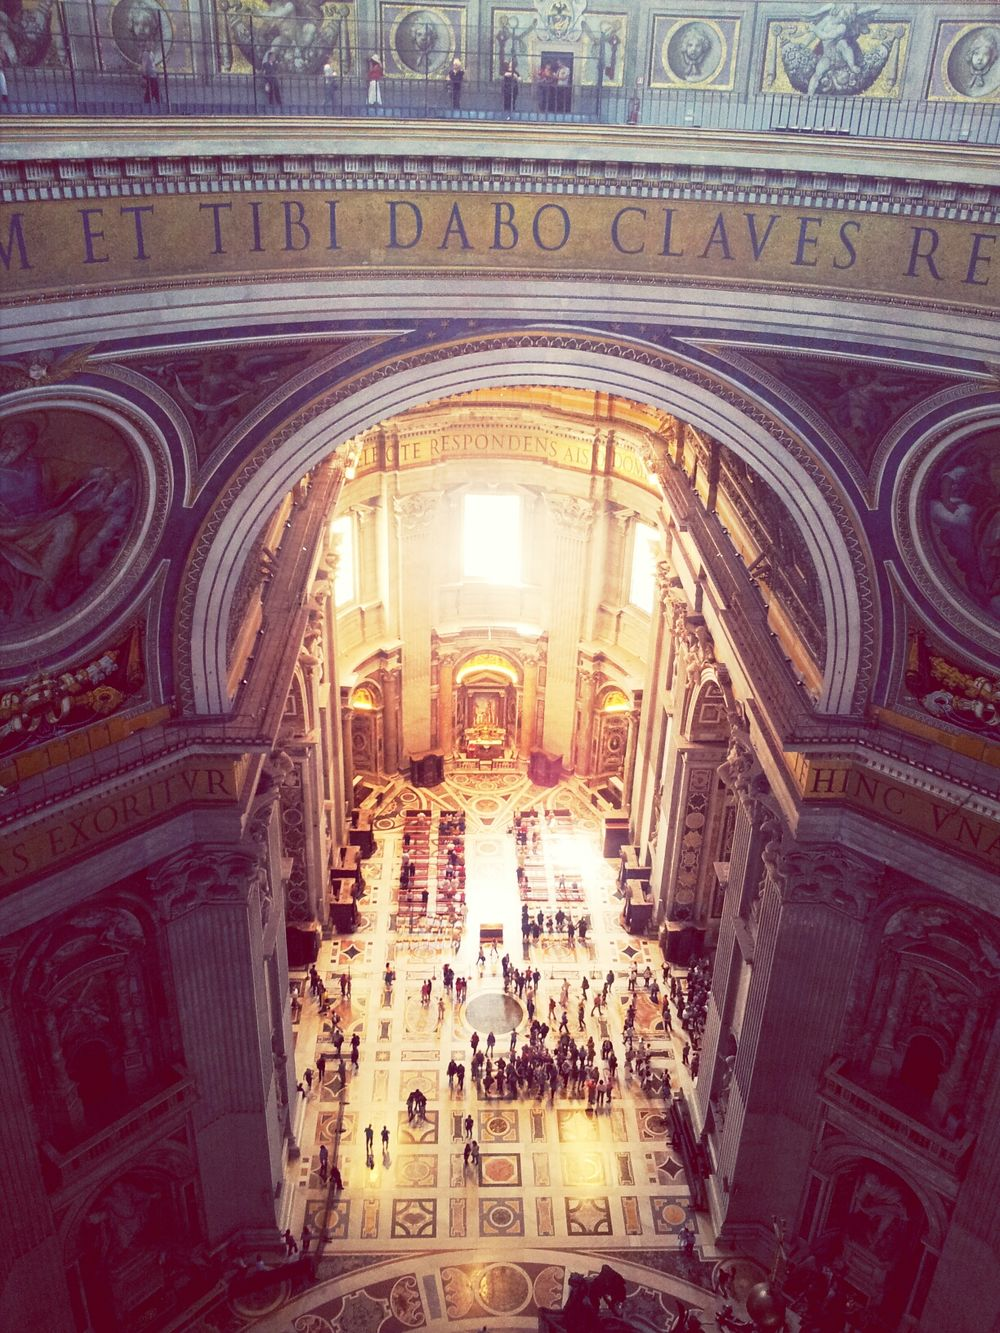 Basilica Di San Pietro In Vaticano Church Vatican EyeEm_Church_Collection